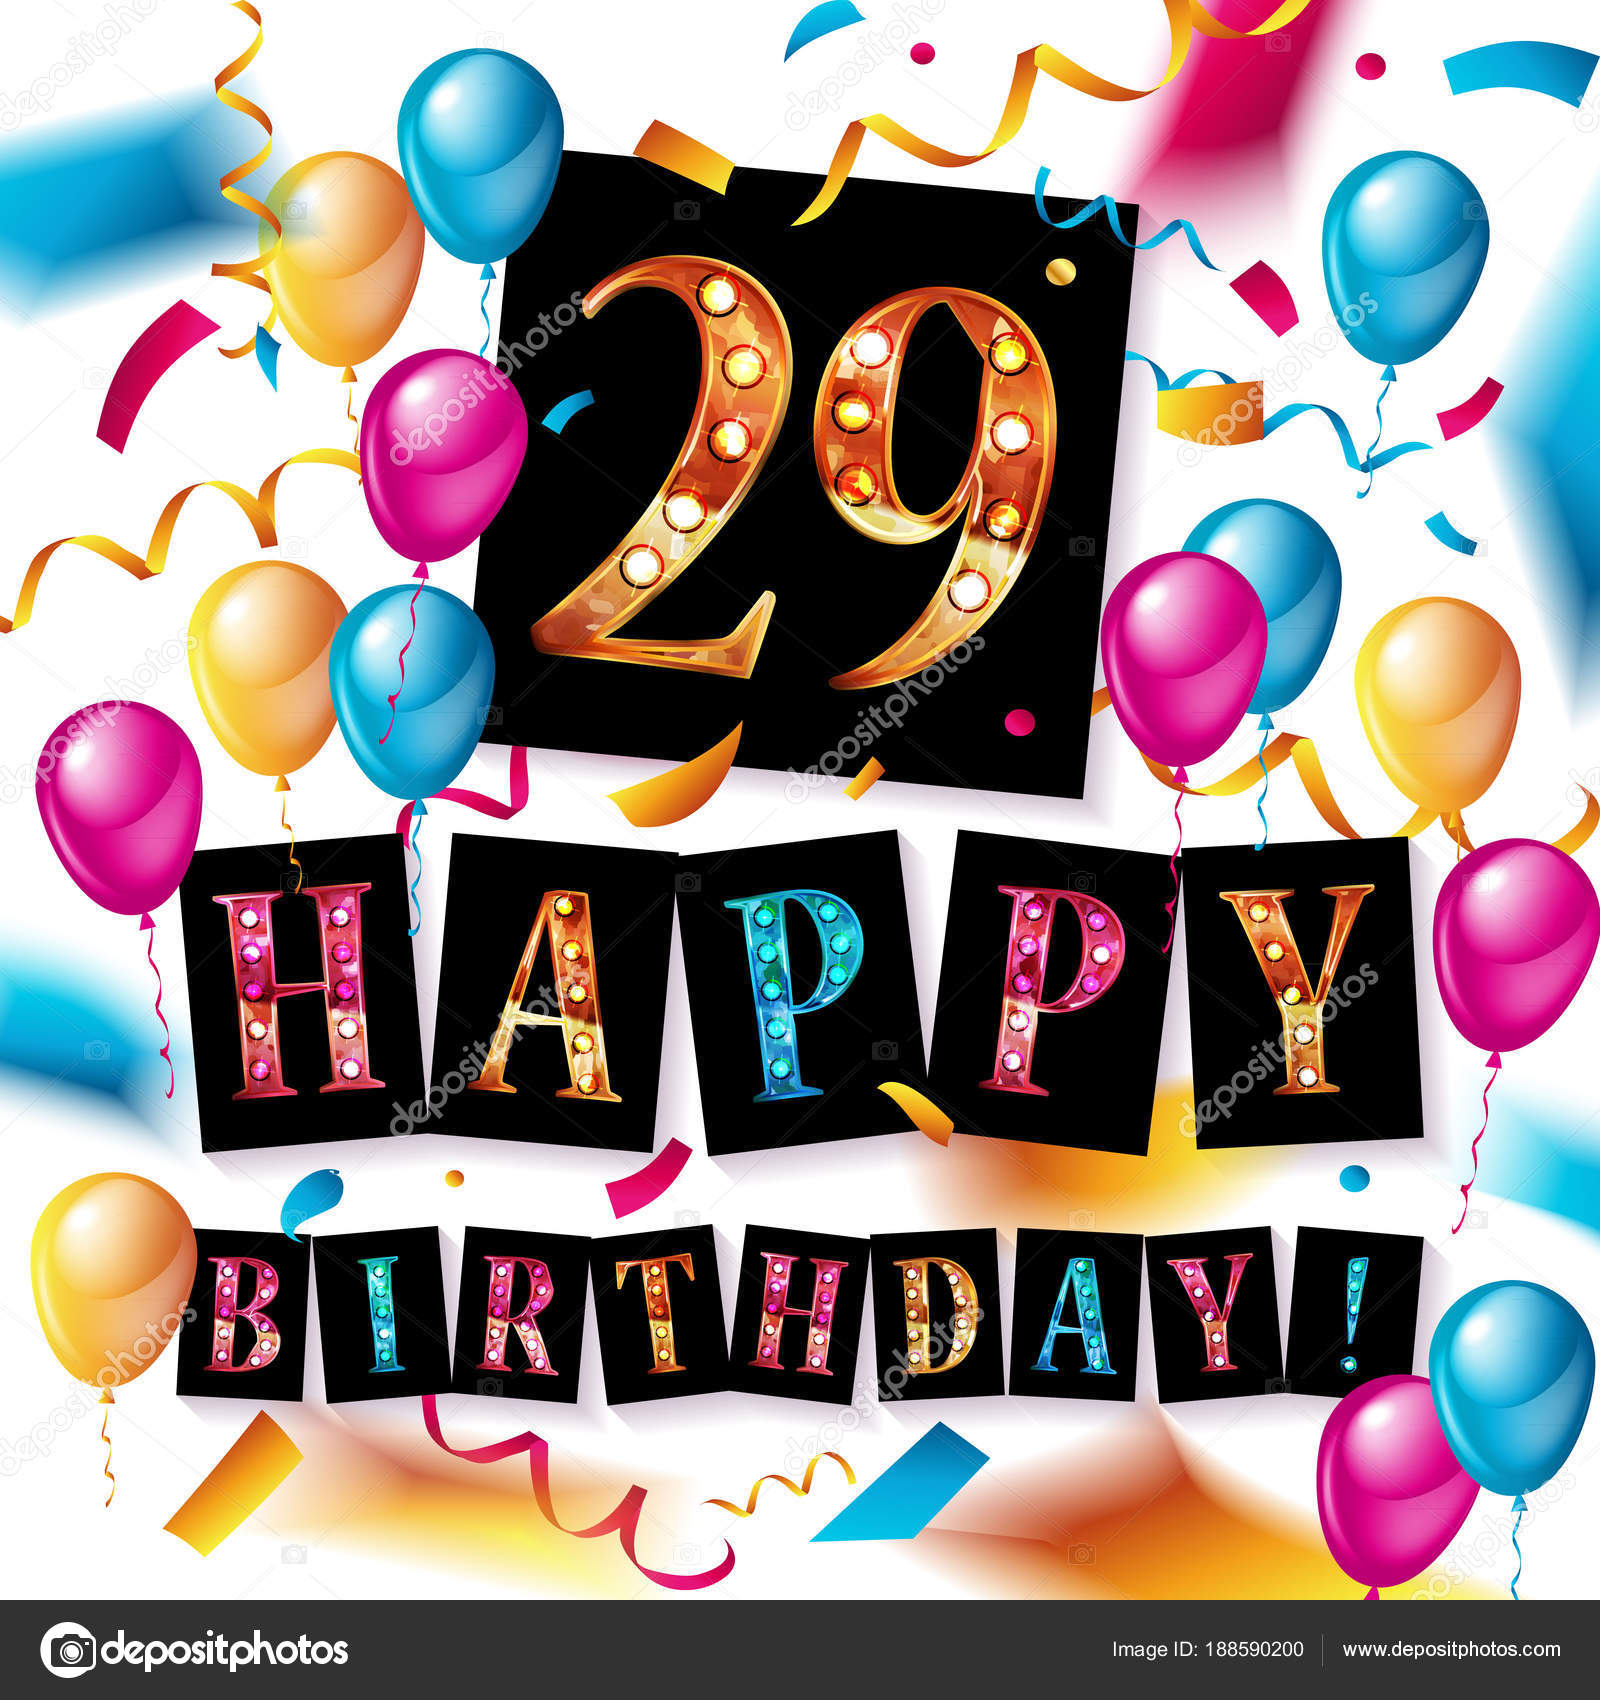 Happy birthday 29 years anniversary stock vector happy birthday 29 years anniversary joy celebration vector illustration with brilliant gold balloons and delight confetti for your unique greeting card bookmarktalkfo Images